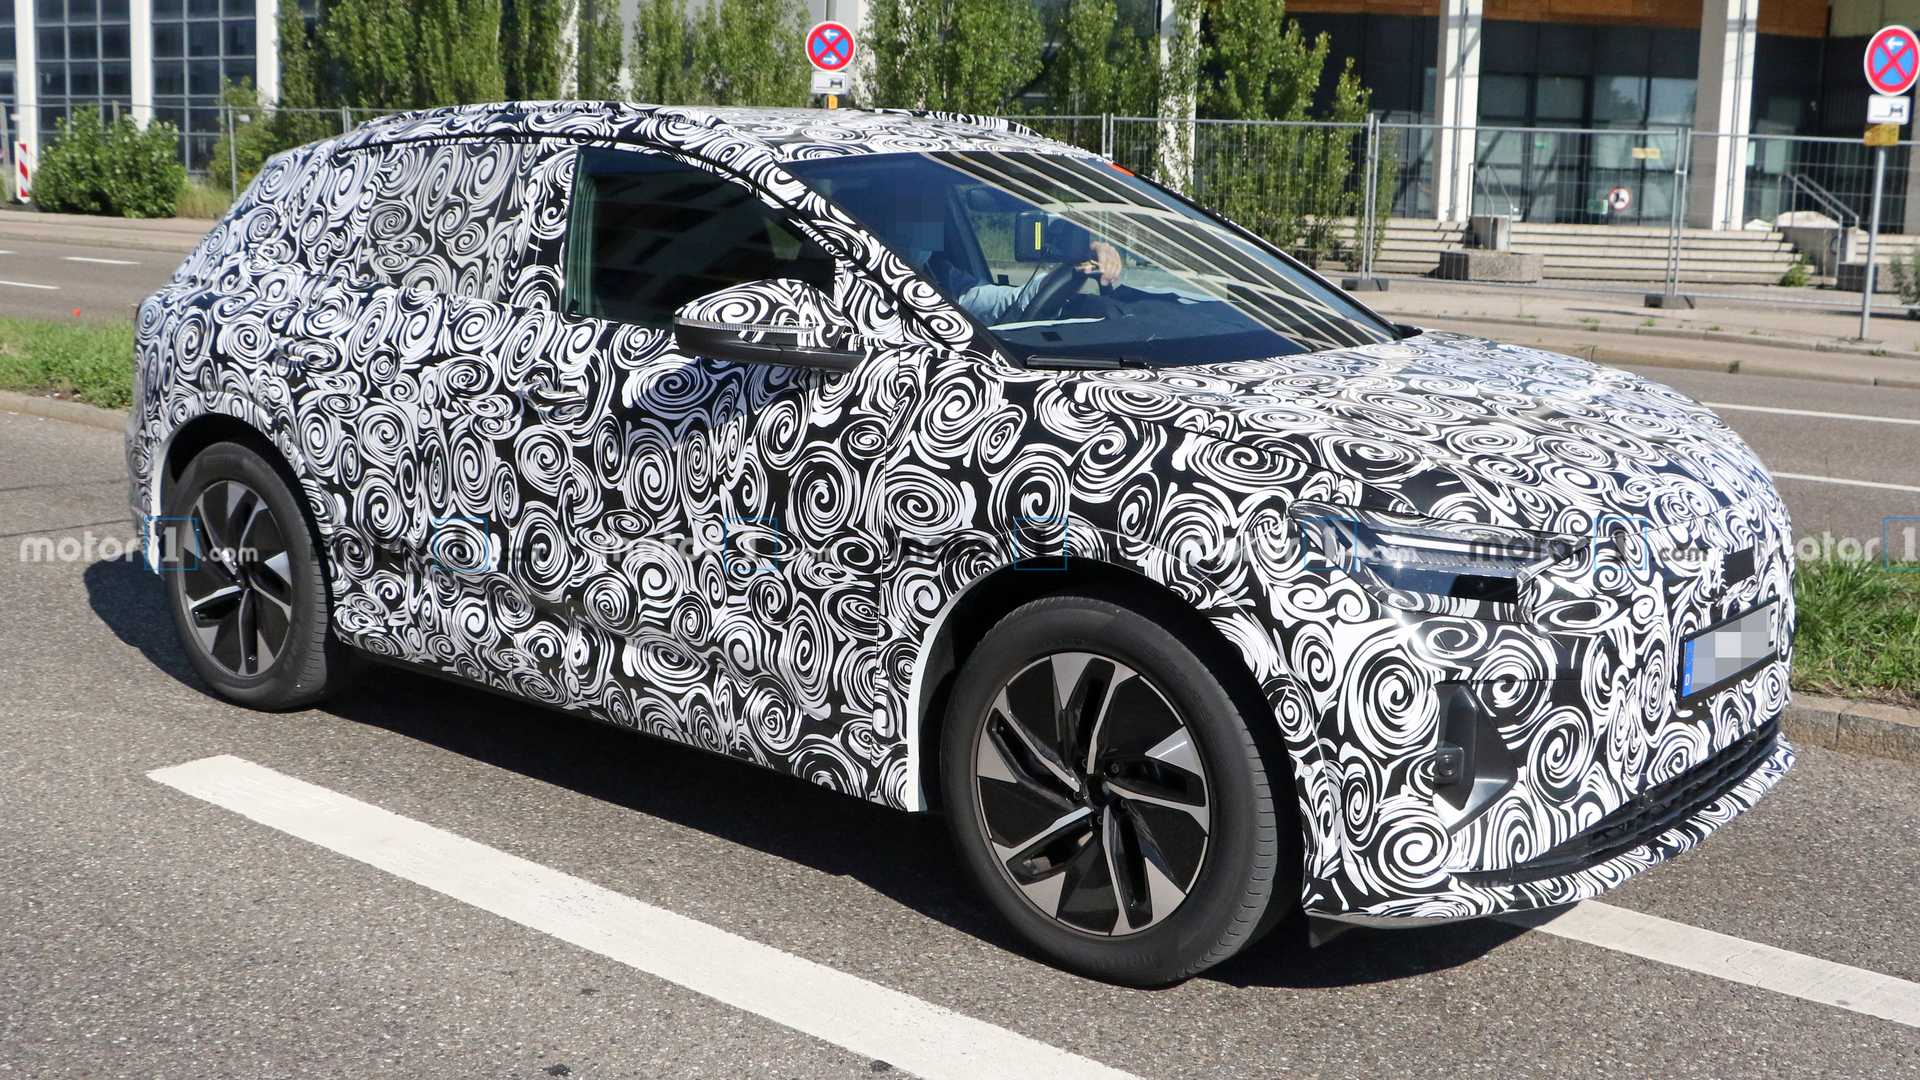 2021 Audi Q4 E-Tron Spied For The First Time With Production Body